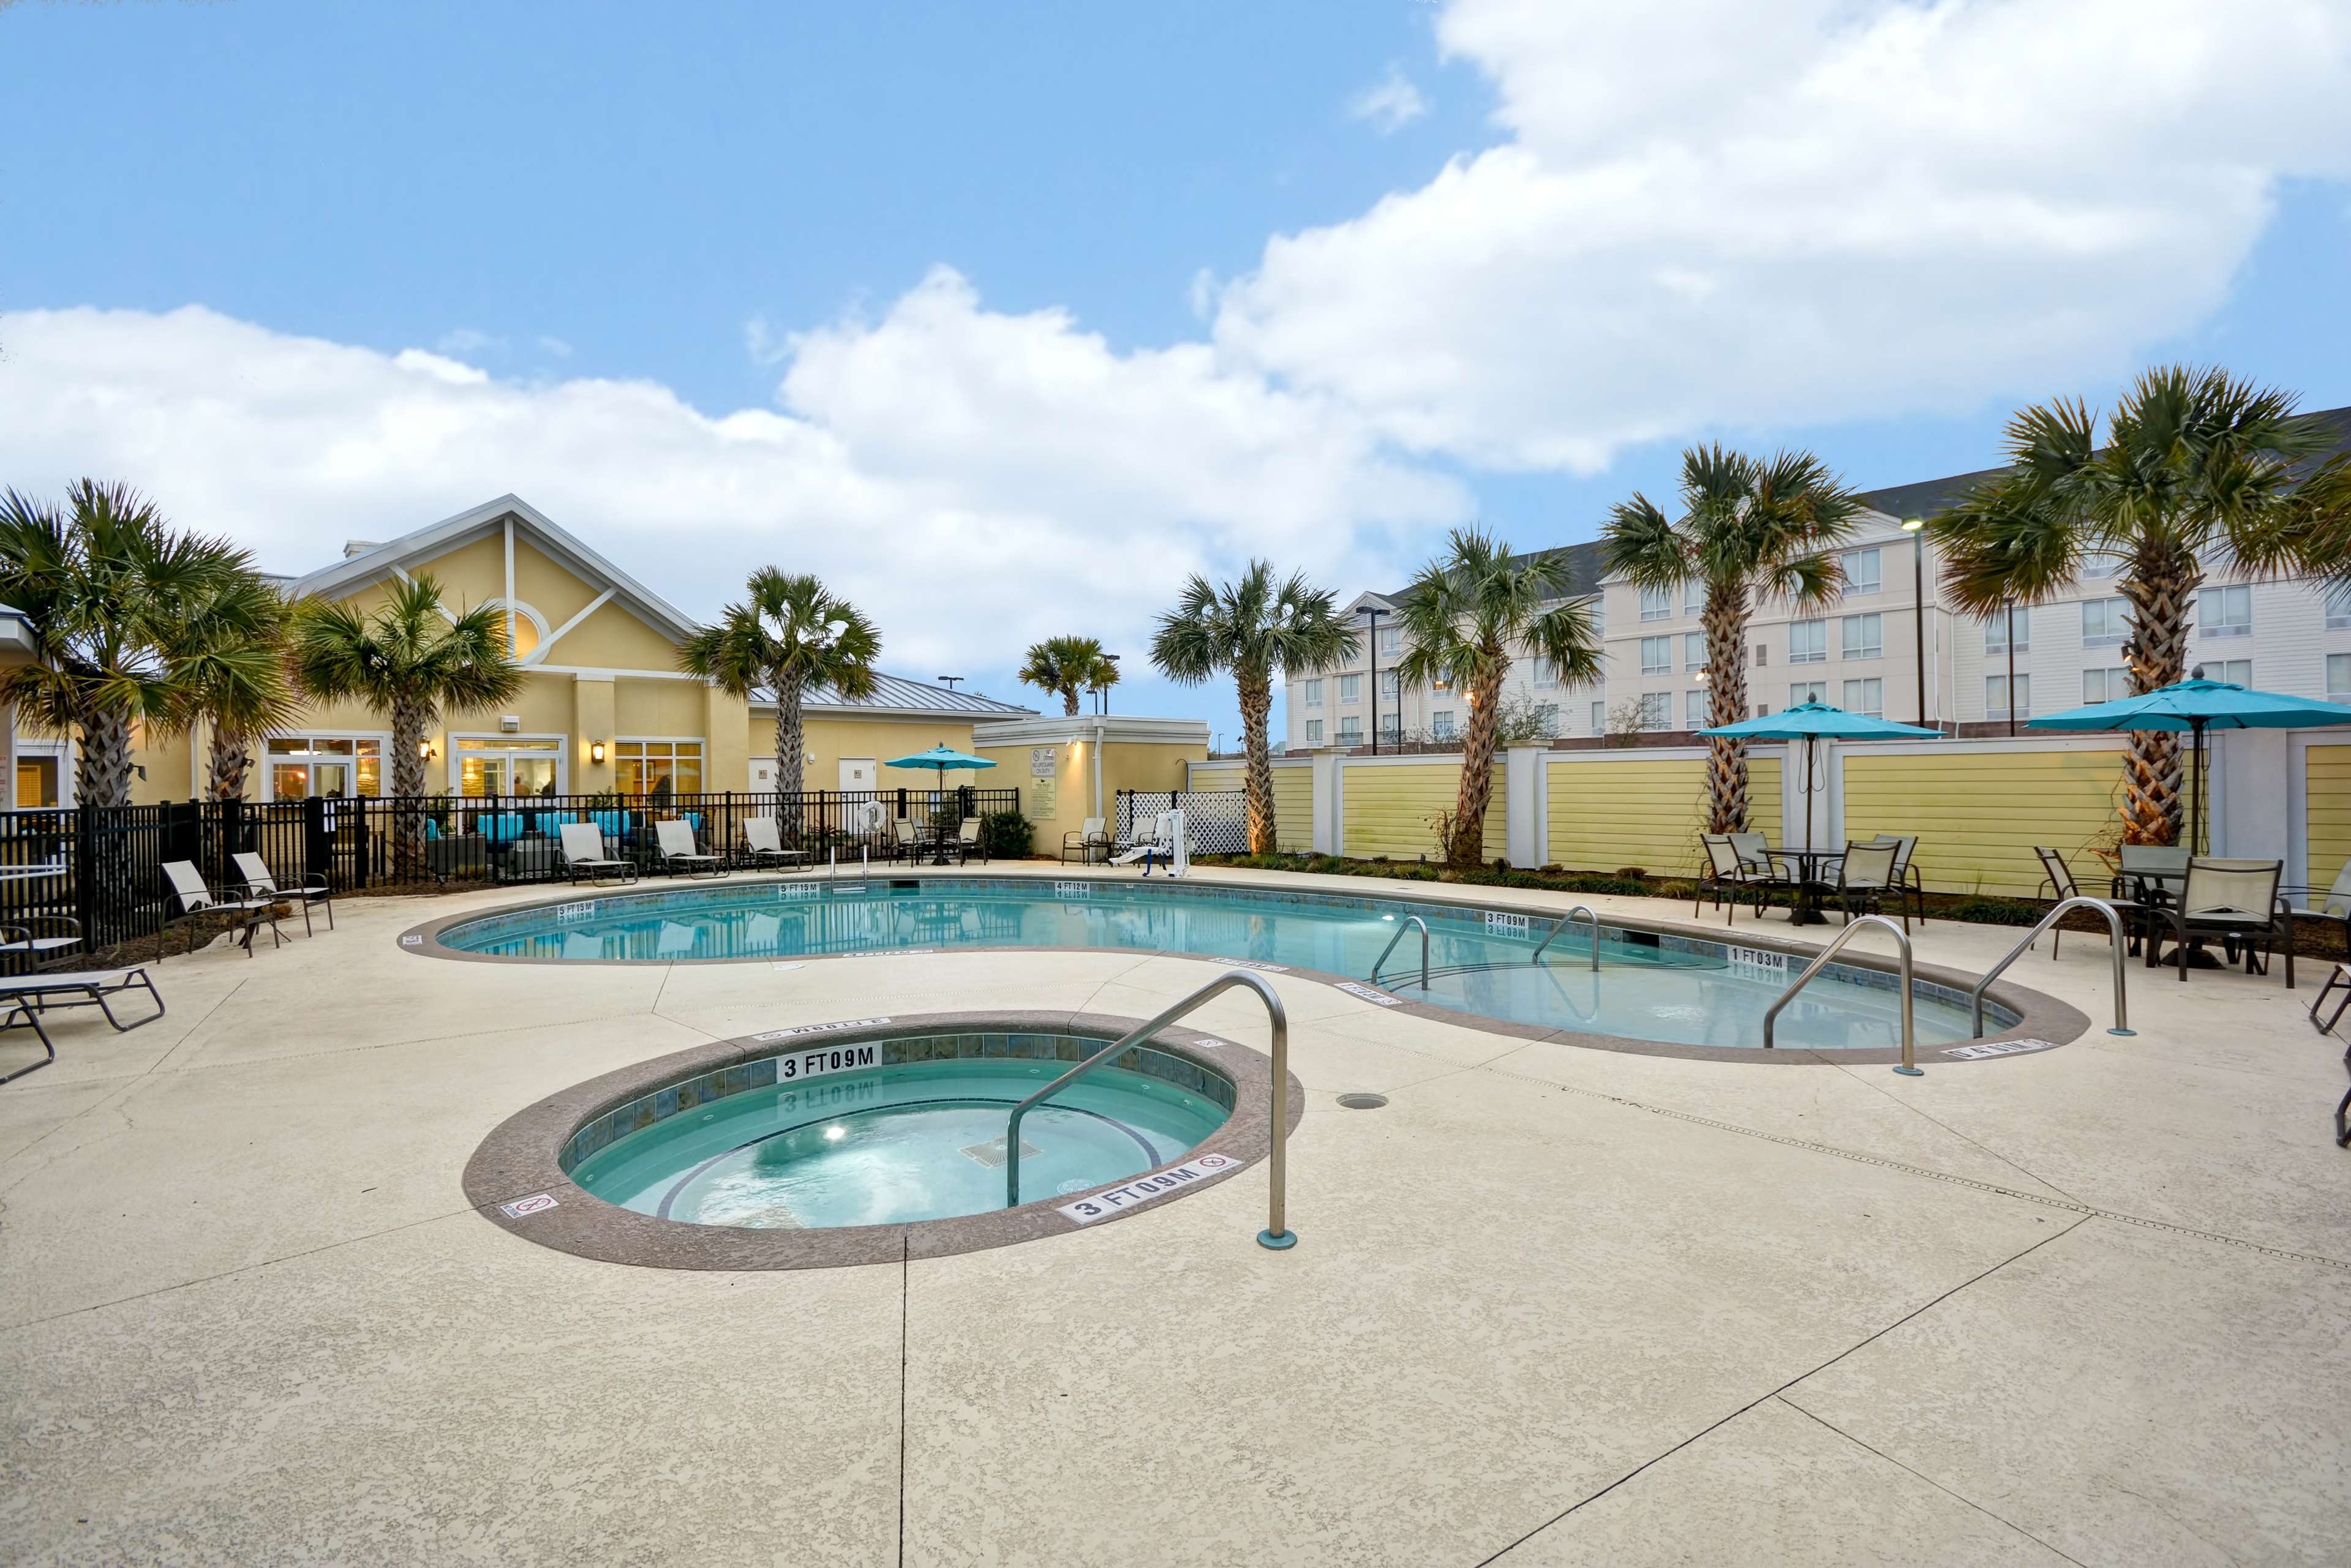 Homewood Suites by Hilton Wilmington/Mayfaire, NC image 5